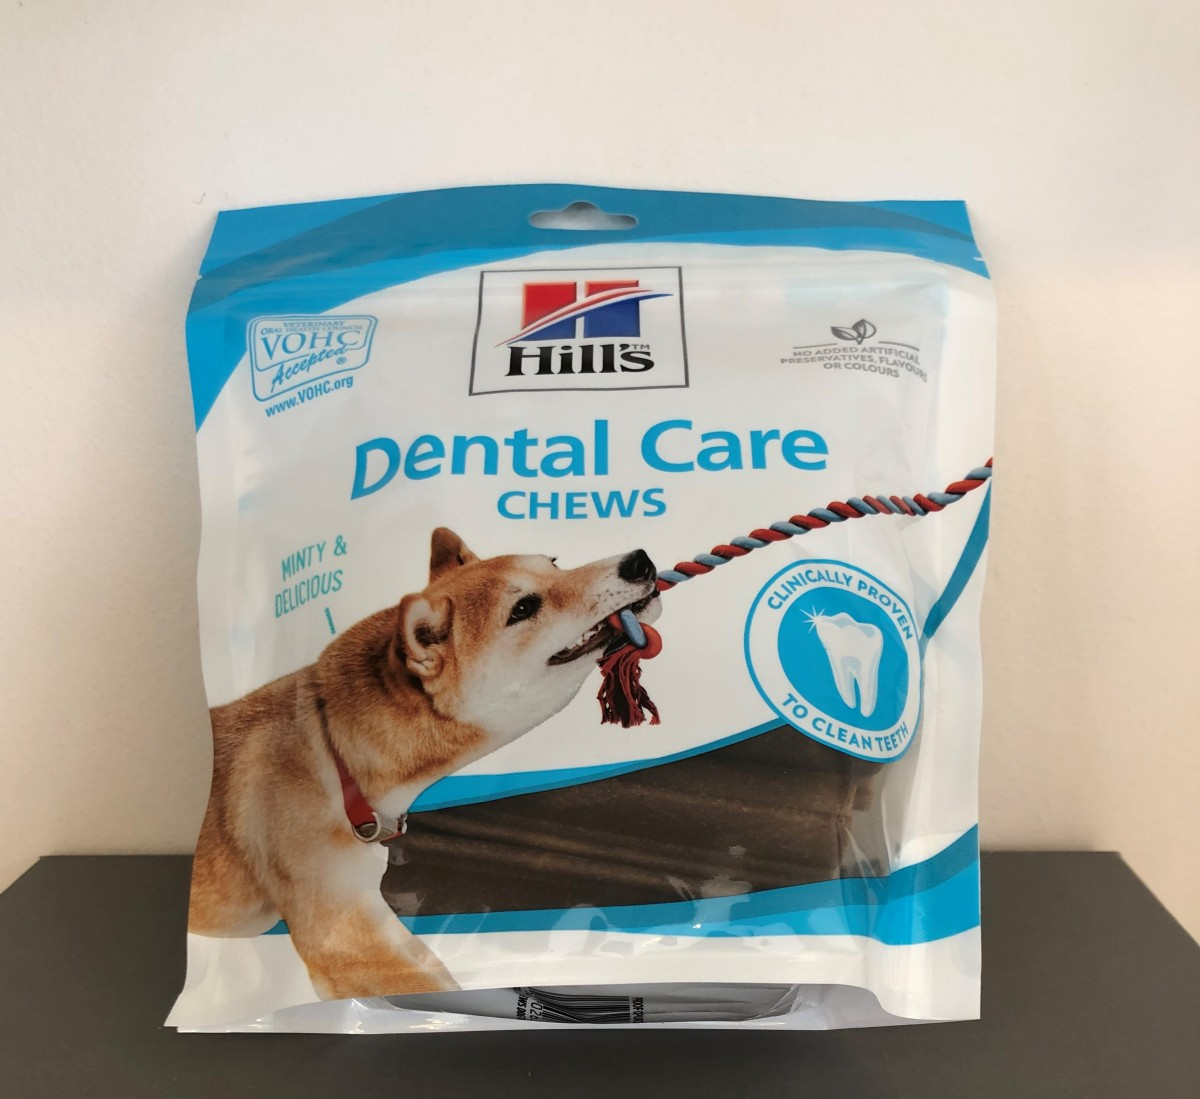 Hills Dental care chews